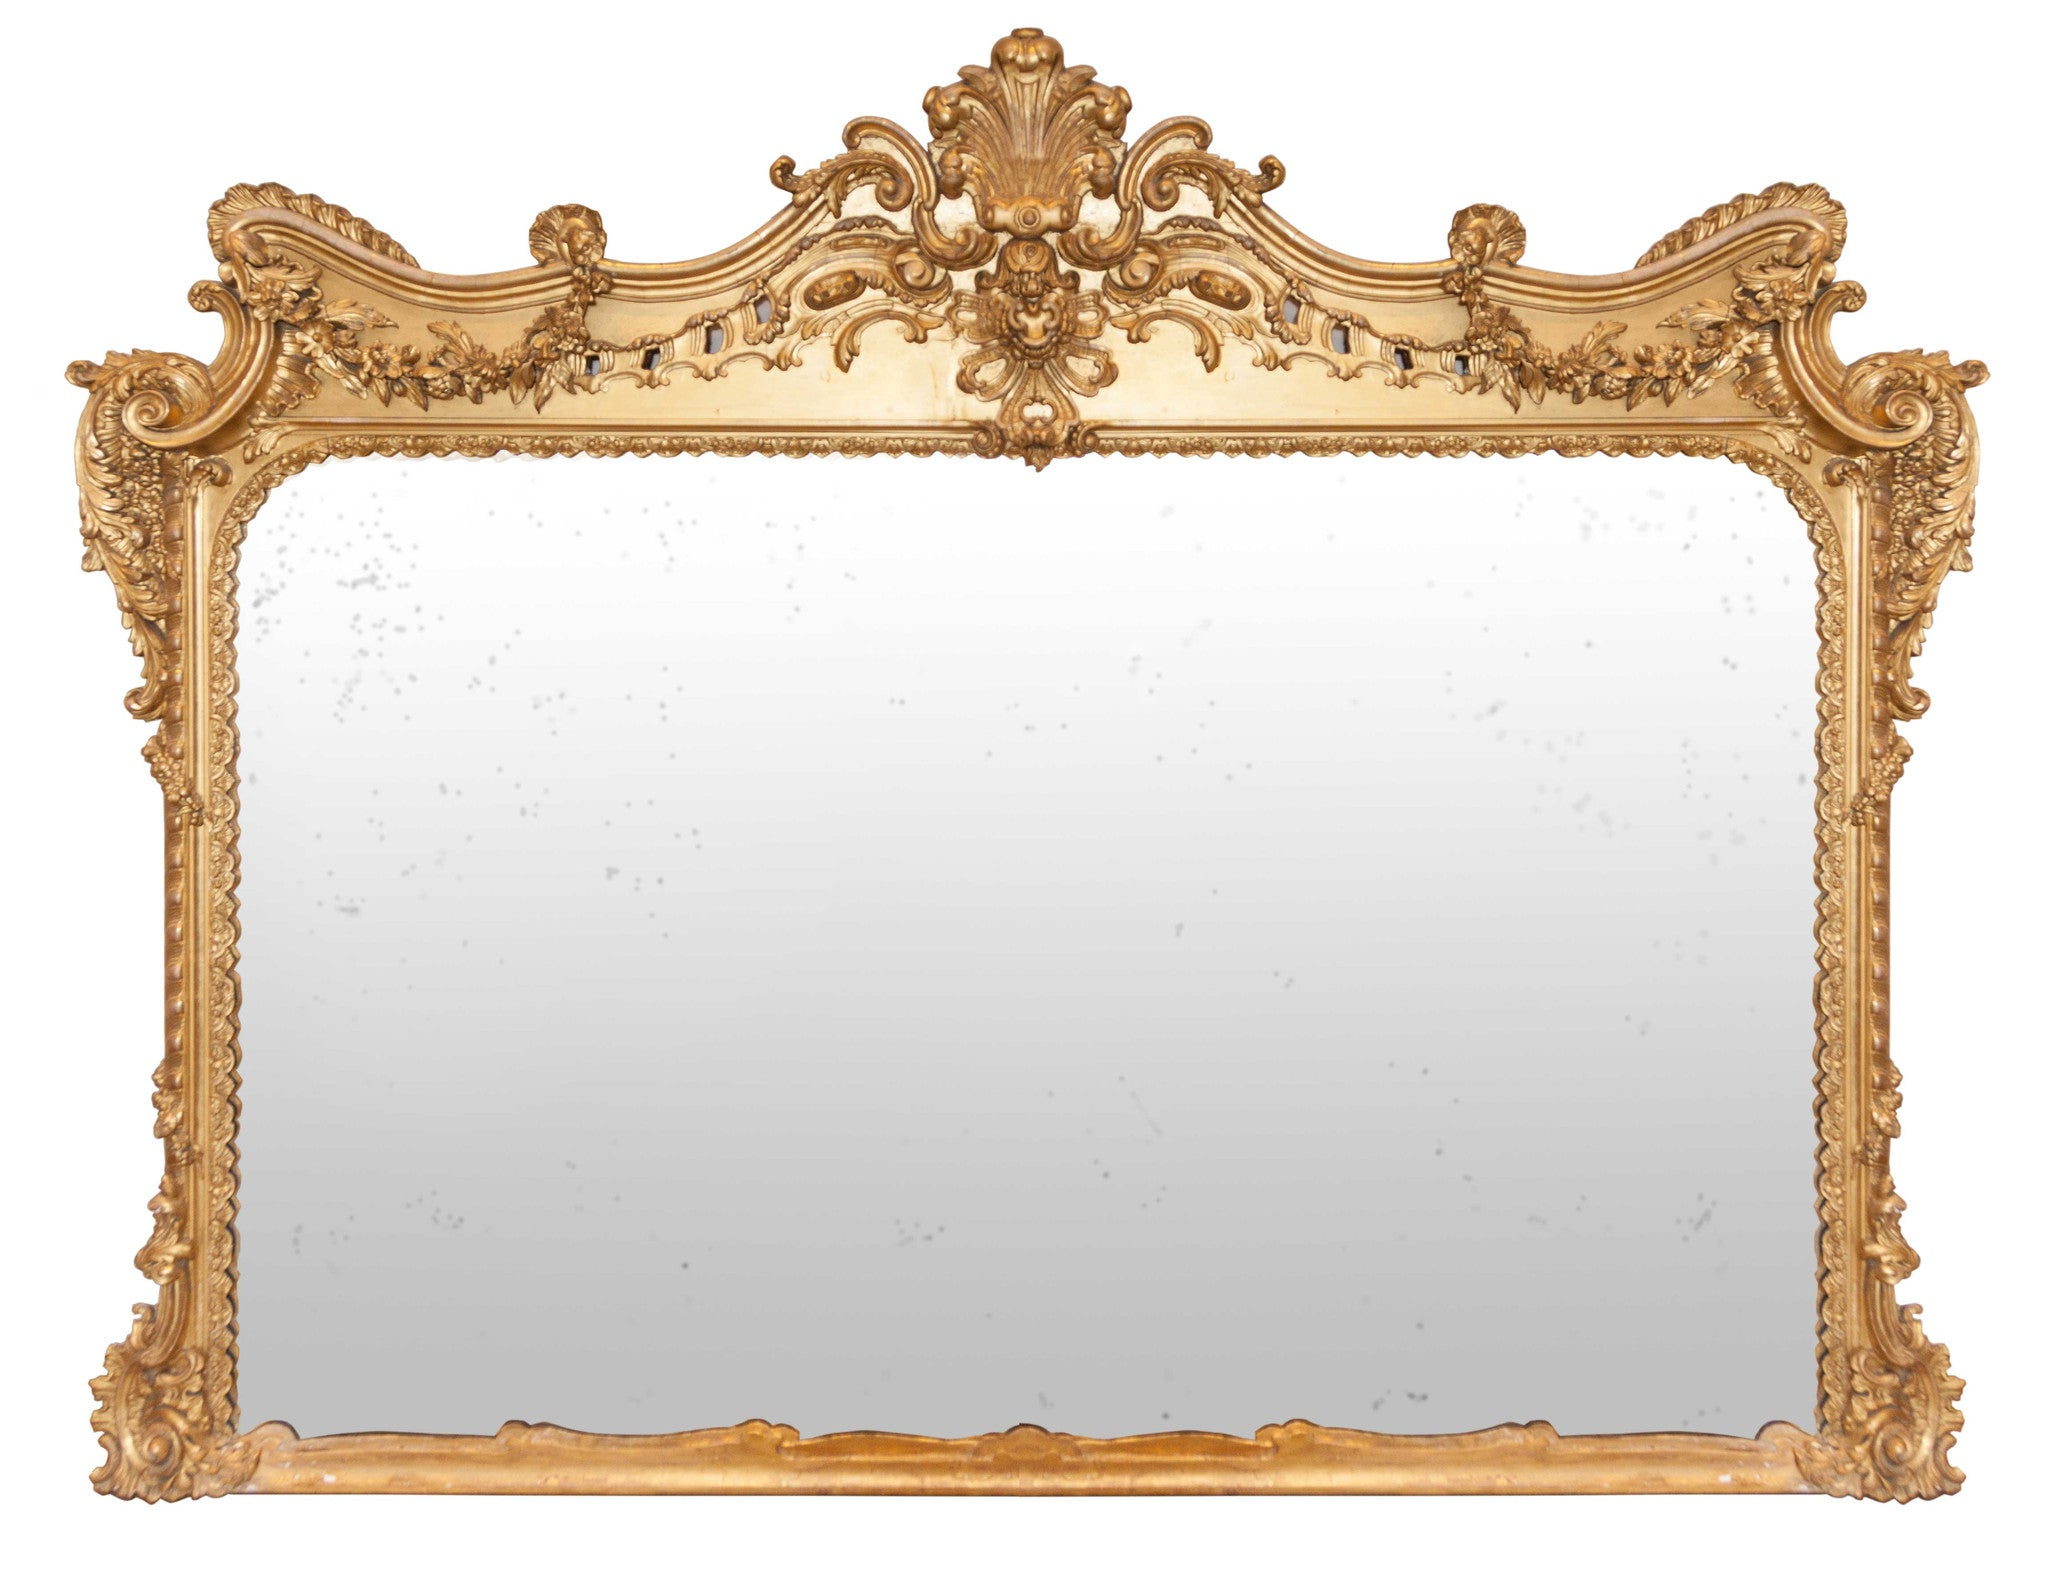 Garners antiques large ornate gilt antique mirror for for Mirrors for sale